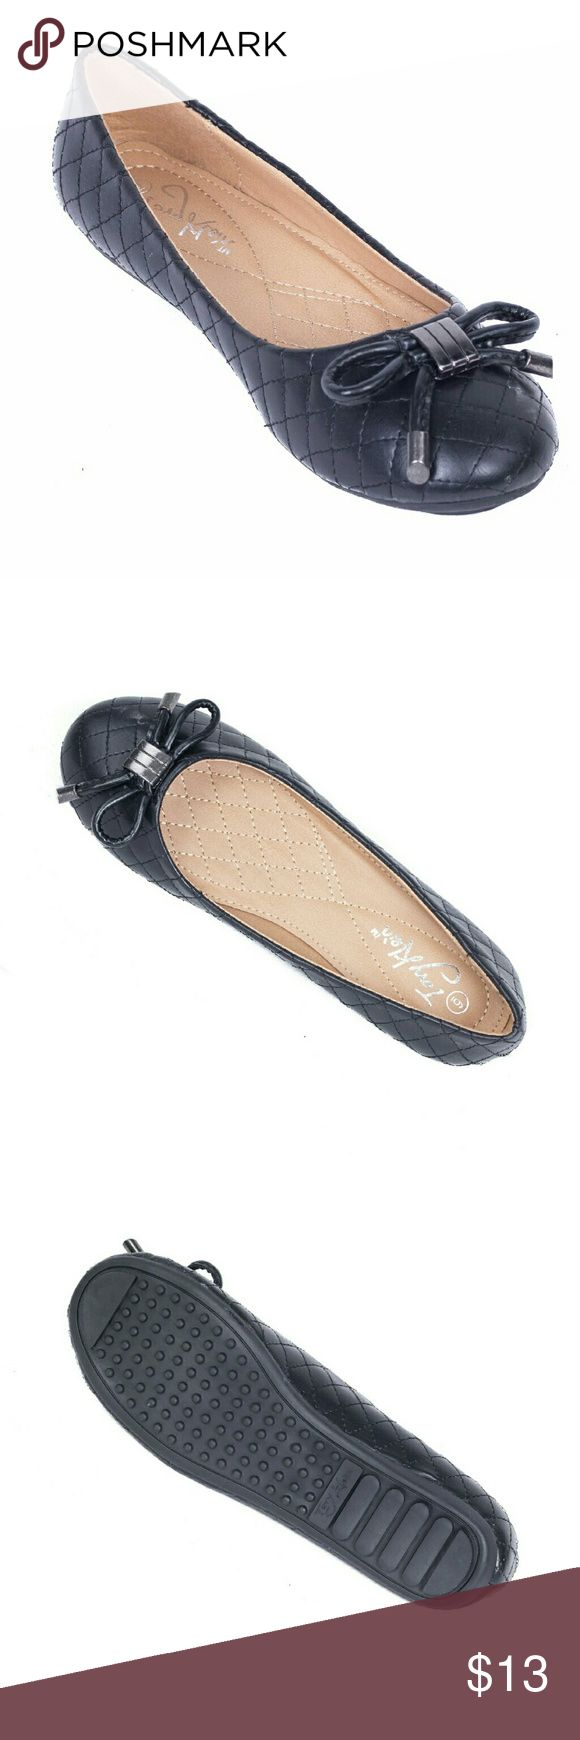 Tory K Ballerina Flats with Bow, b-1608, Black Brand new Tory Klein quilted  black ballerina flats with a pretty bow in the front. Soft cushioned sole, very comfortable, true to size. Bubbled bottom sole for extra traction. Tory K Shoes Flats & Loafers